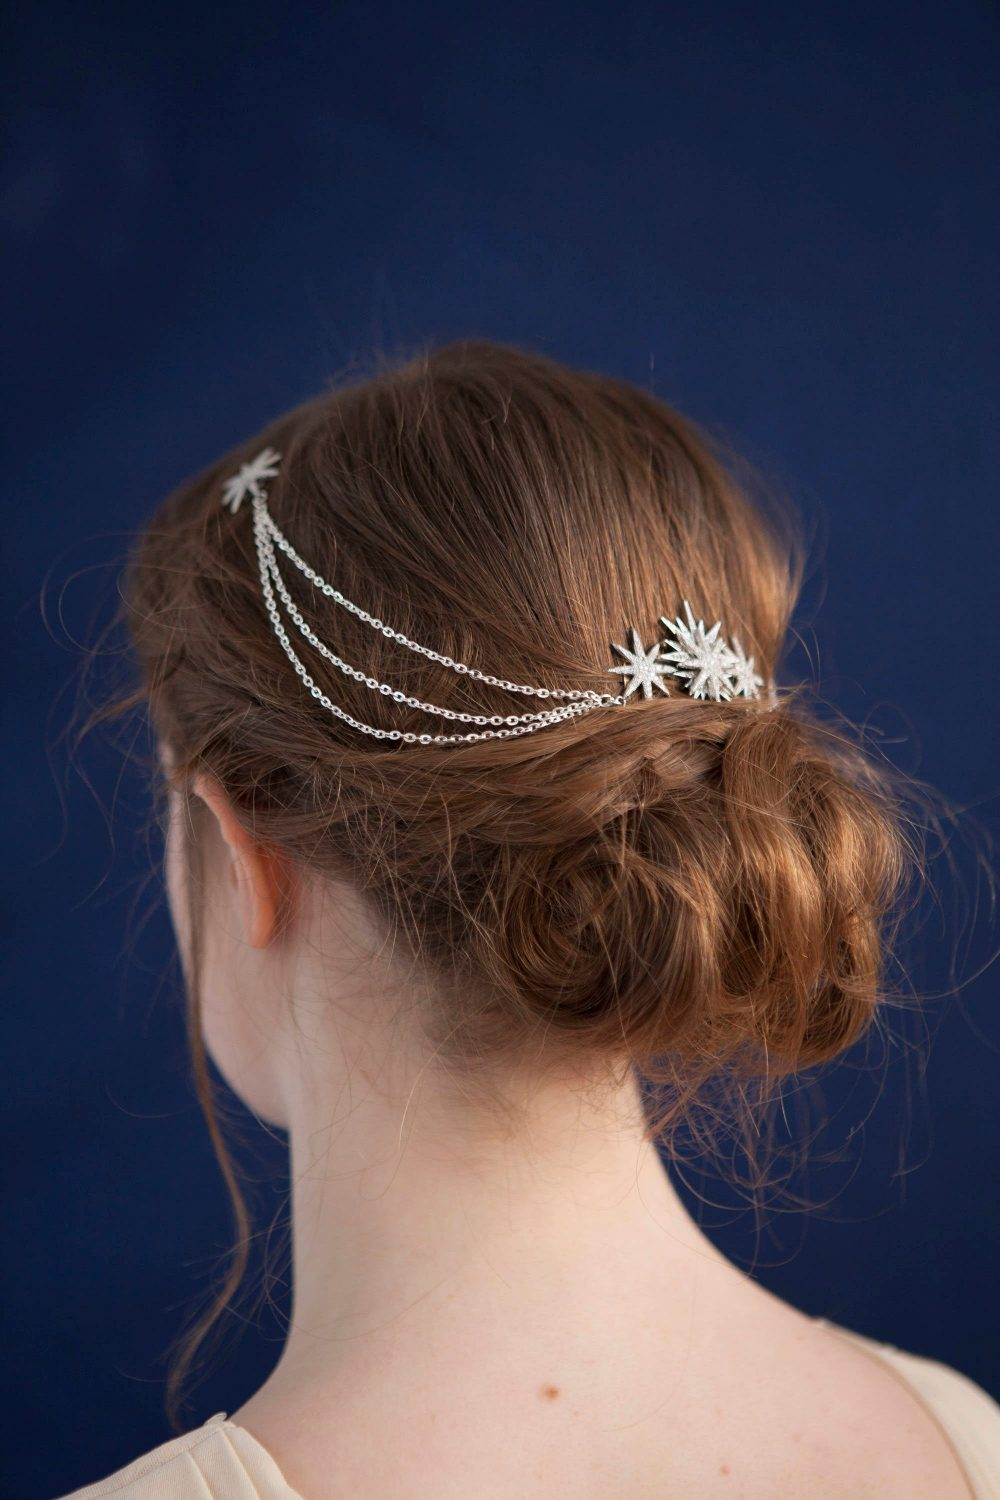 Wedding Hair Chain - Bridal Headpiece With Swags Silver Draped Stars Boho Style